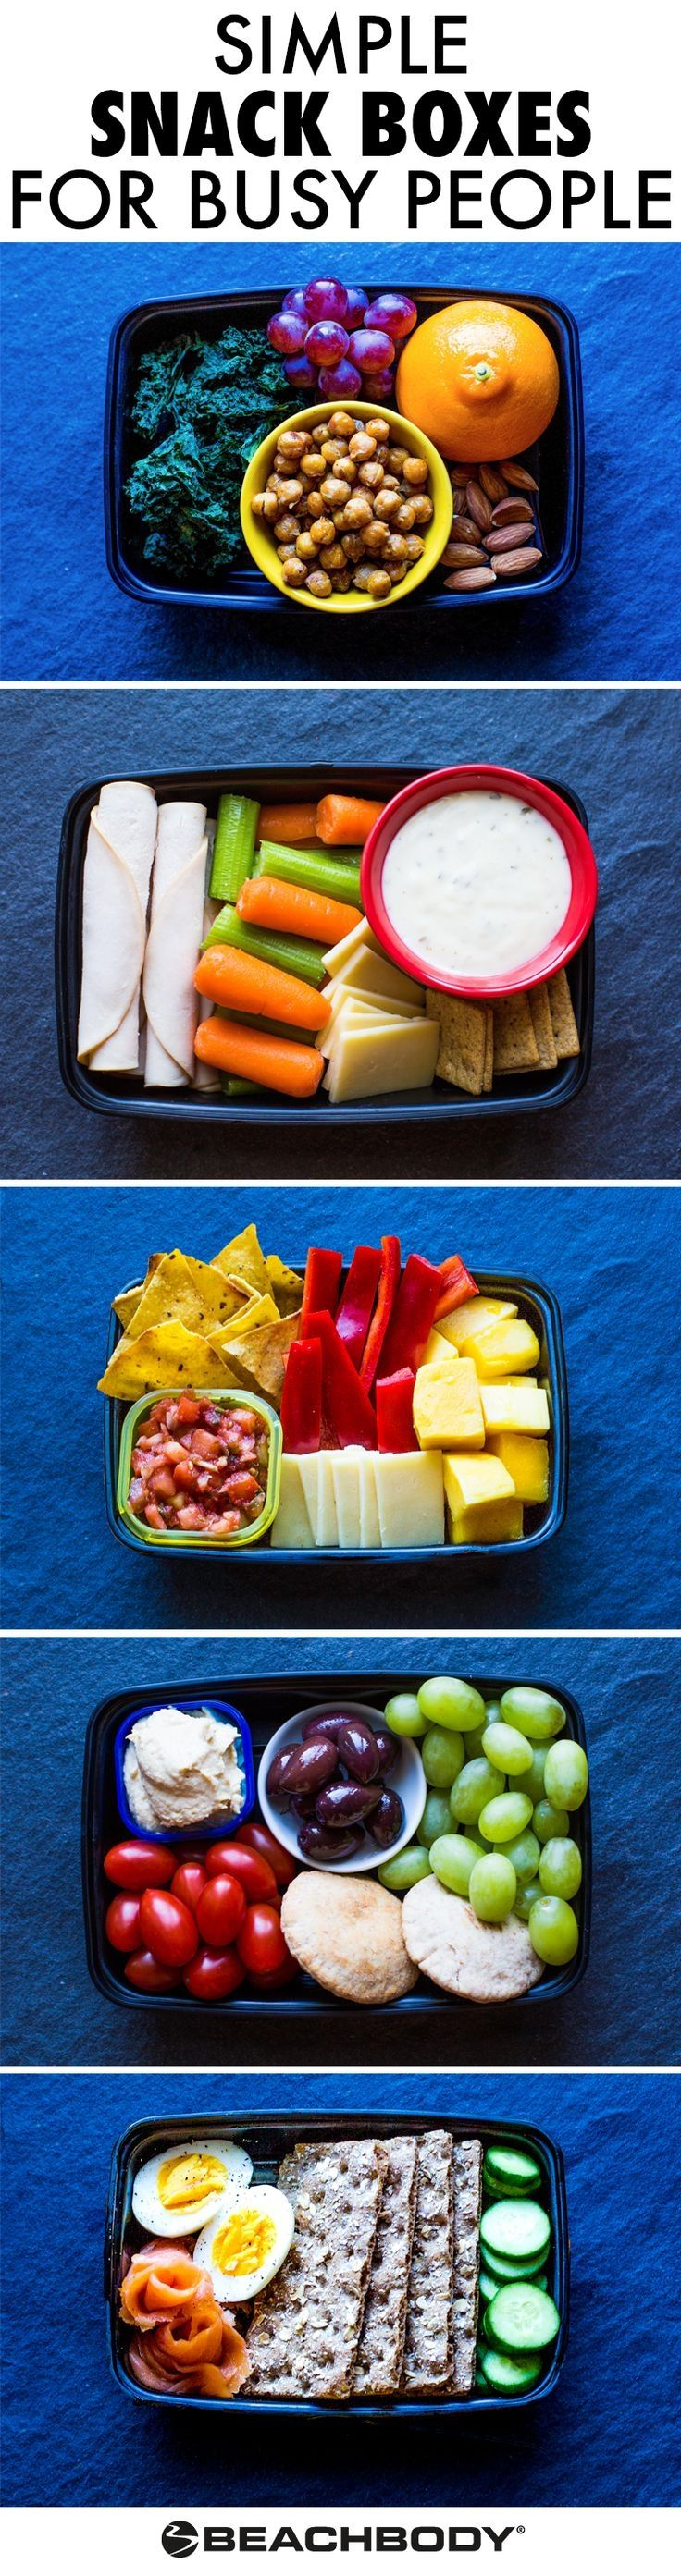 These grab-and-go snack boxes are easy to put together and each one is loaded with protein and fiber to satisfy that mid-afternoon rumble in your tummy. // snacks // meal prep // back to school // quick and simple // snack ideas // healthy food // eat clean // Beachbody // http://BeachbodyBlog.com #weightlossbeforeandafter